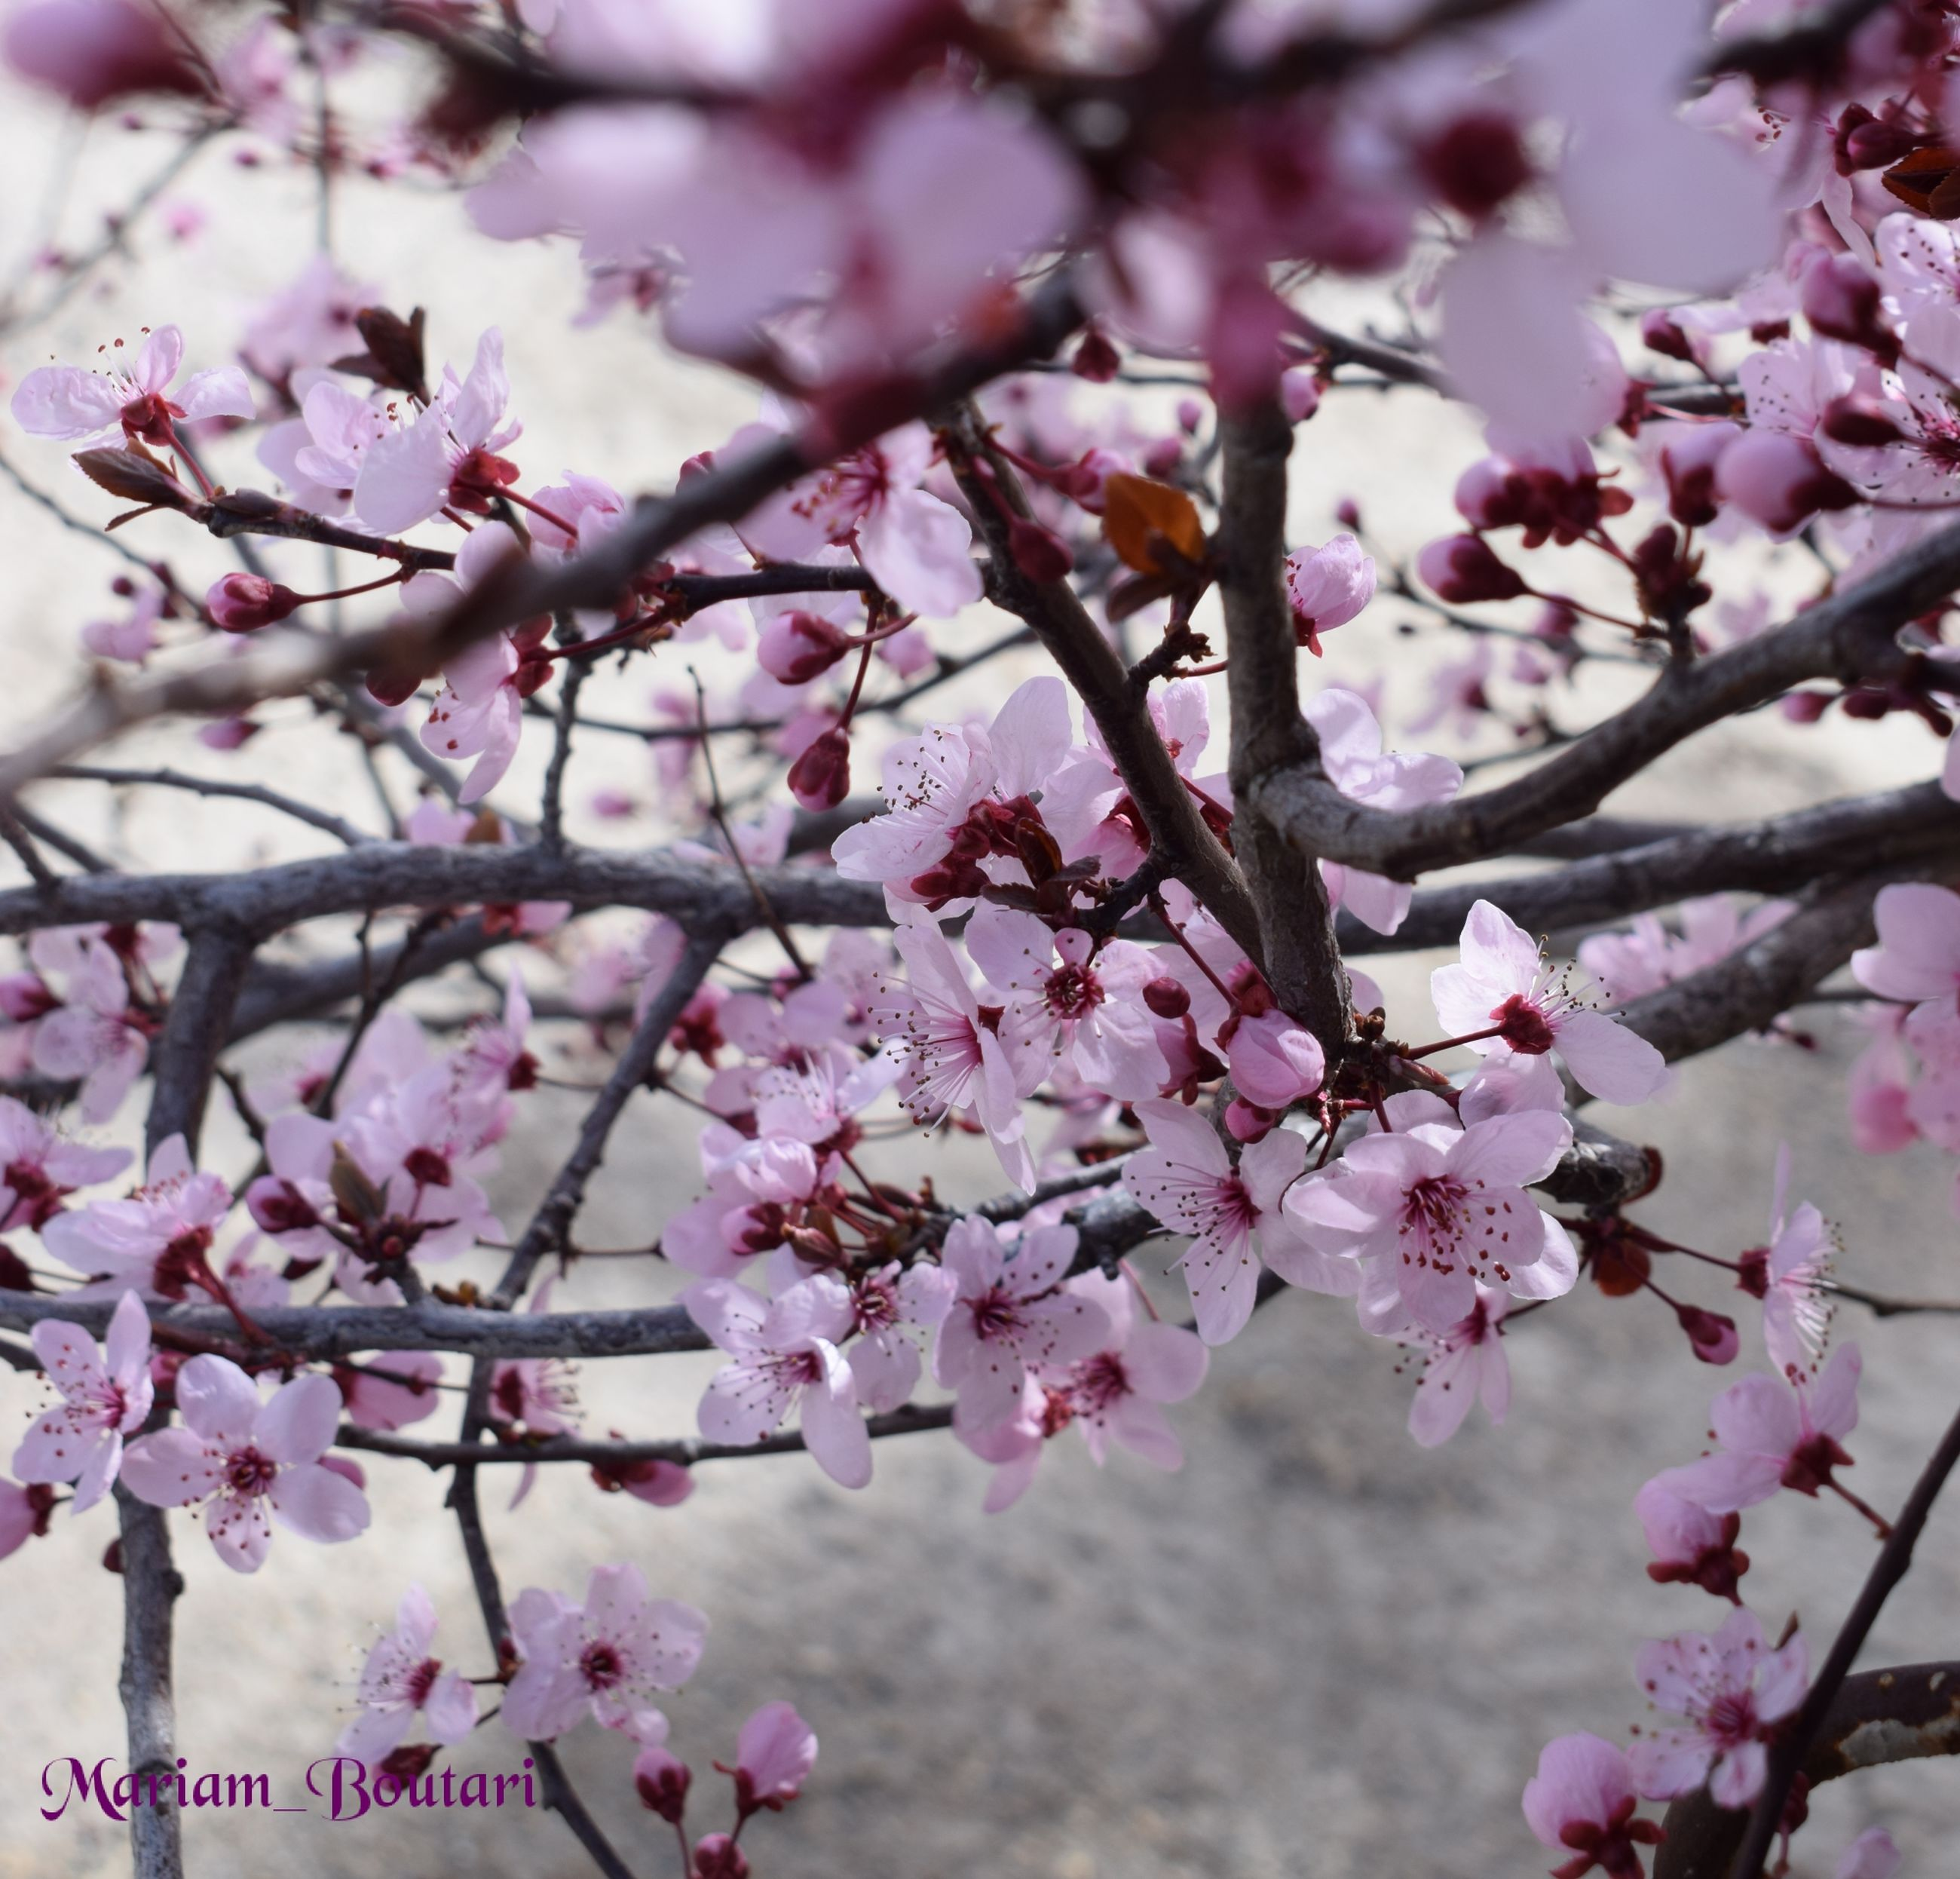 flowering plant, flower, plant, pink color, growth, tree, freshness, blossom, fragility, branch, beauty in nature, vulnerability, springtime, nature, close-up, cherry blossom, no people, day, petal, cherry tree, outdoors, flower head, spring, plum blossom, bunch of flowers